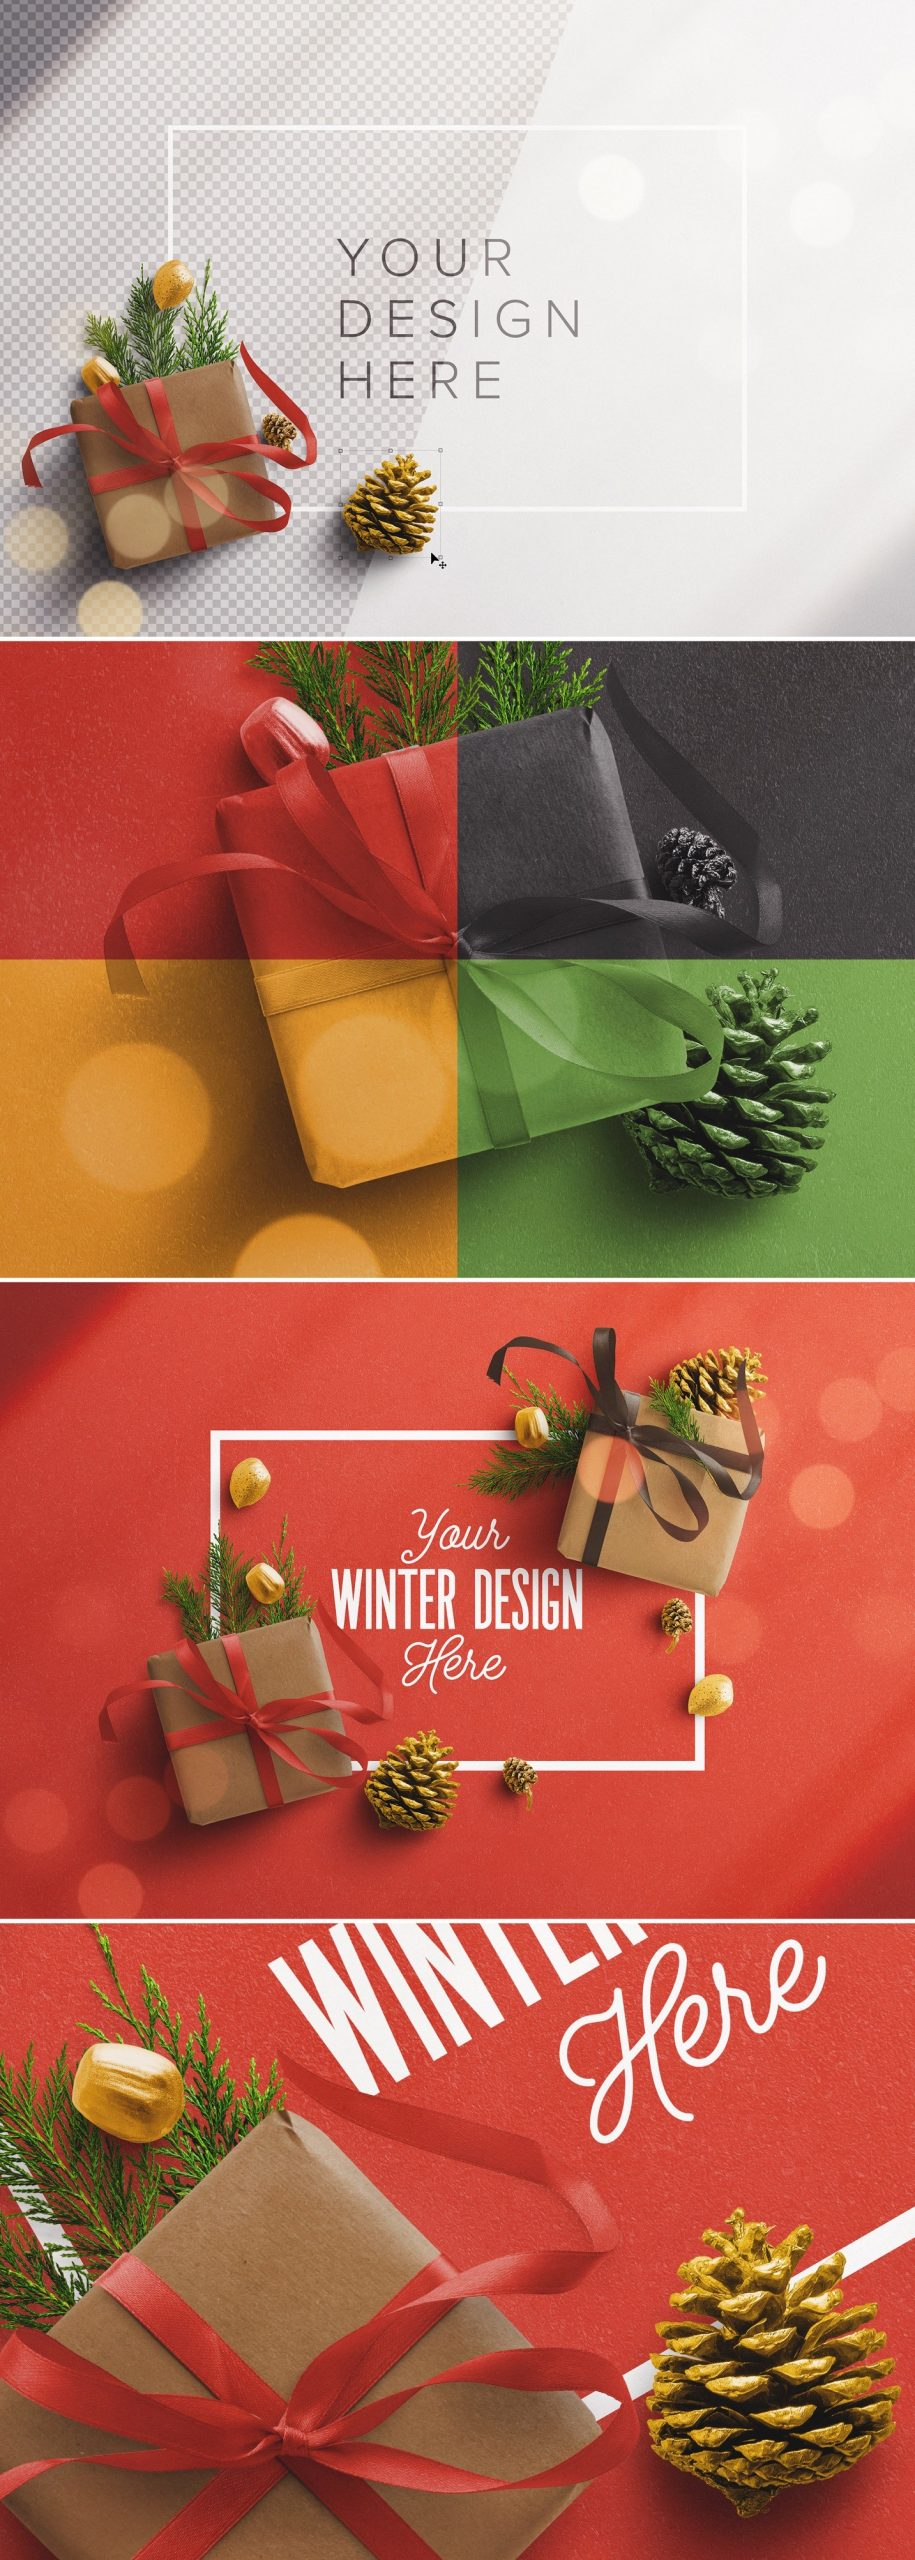 winter frame gift mockup preview1 1 scaled